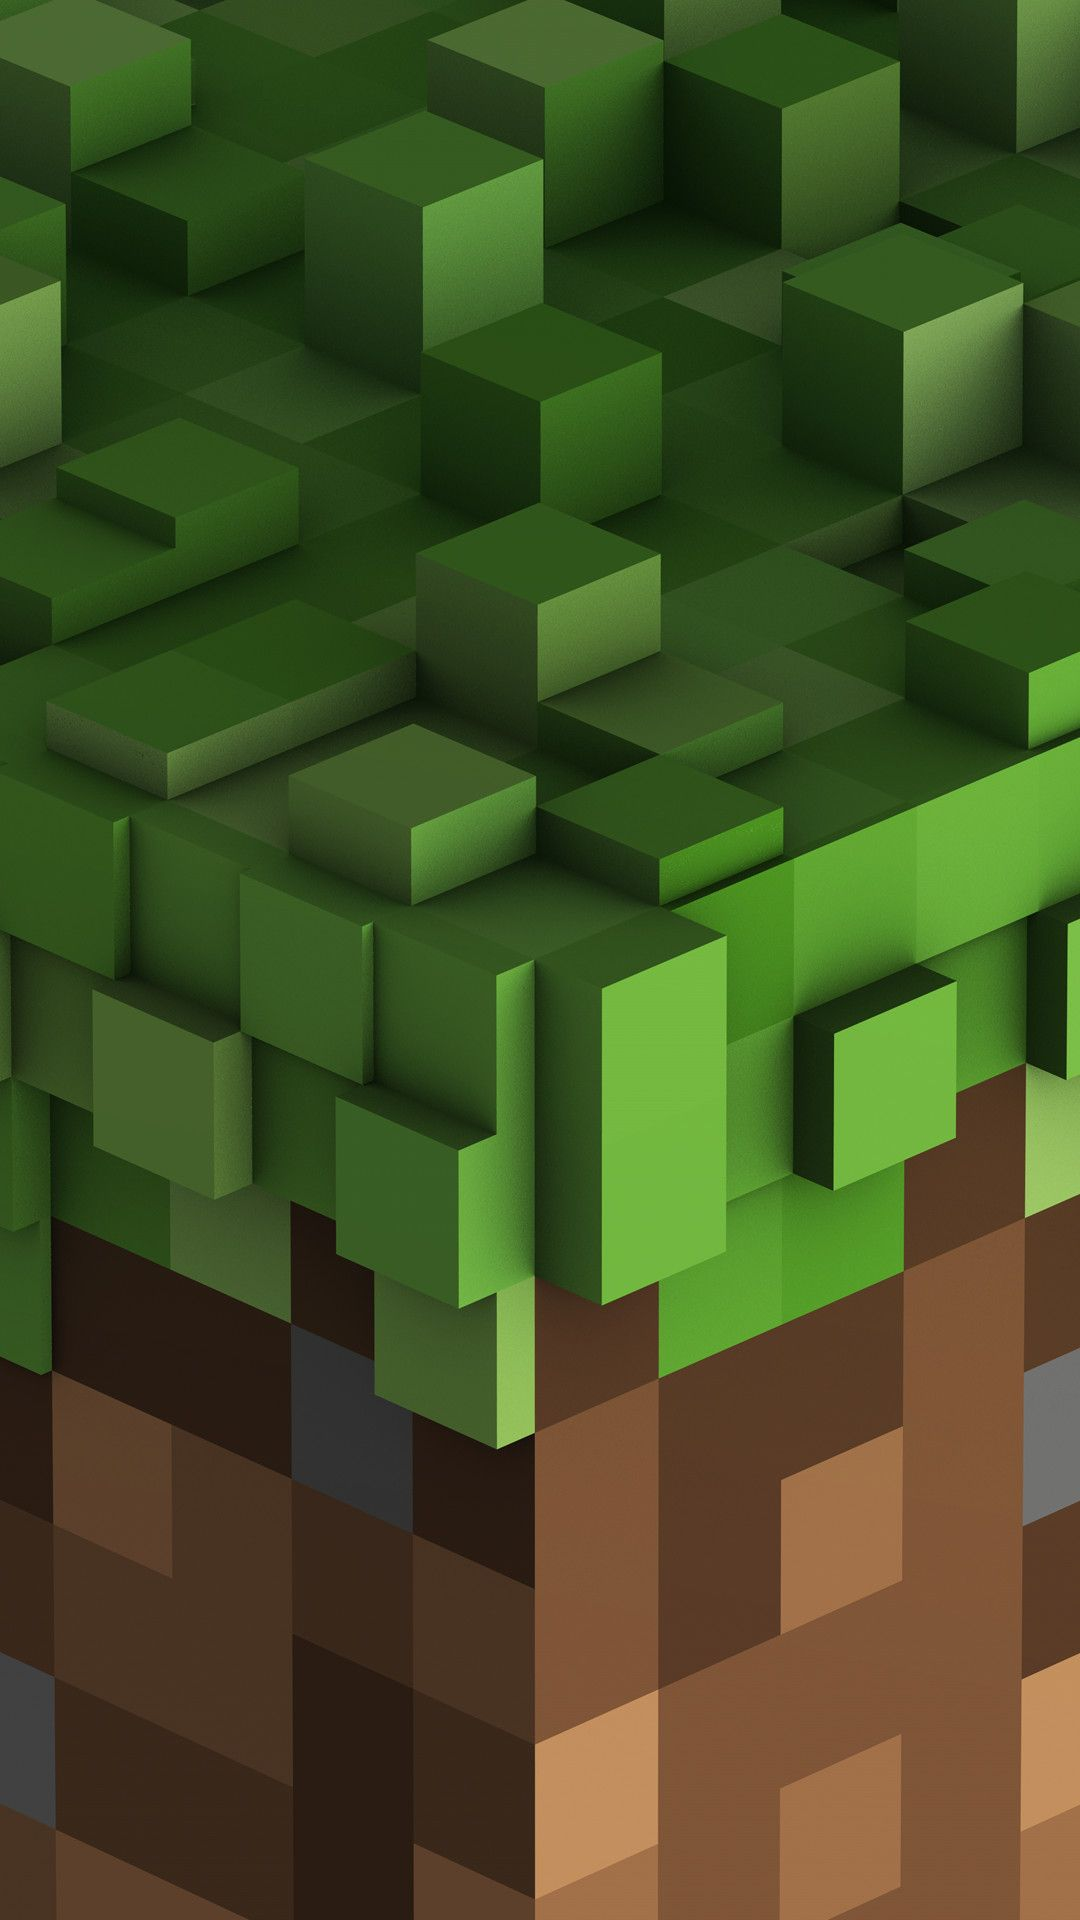 1080x1920 Minecraft | Minecraft wallpaper, Minecraft mobile, Minecraft art